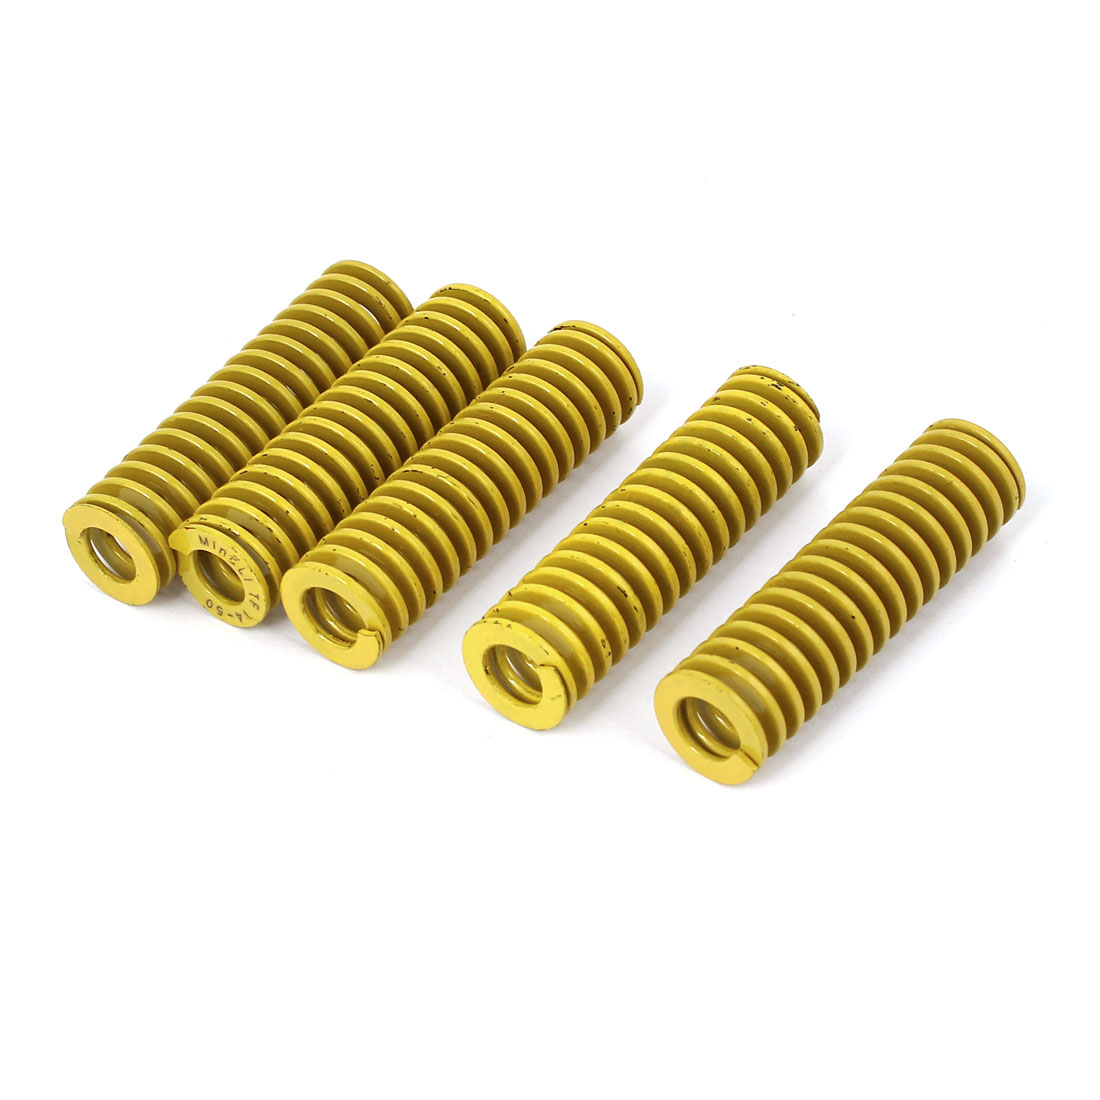 14mm x 50mm Tubular Section Mold Mould Die Spring Yellow 5 Pcs